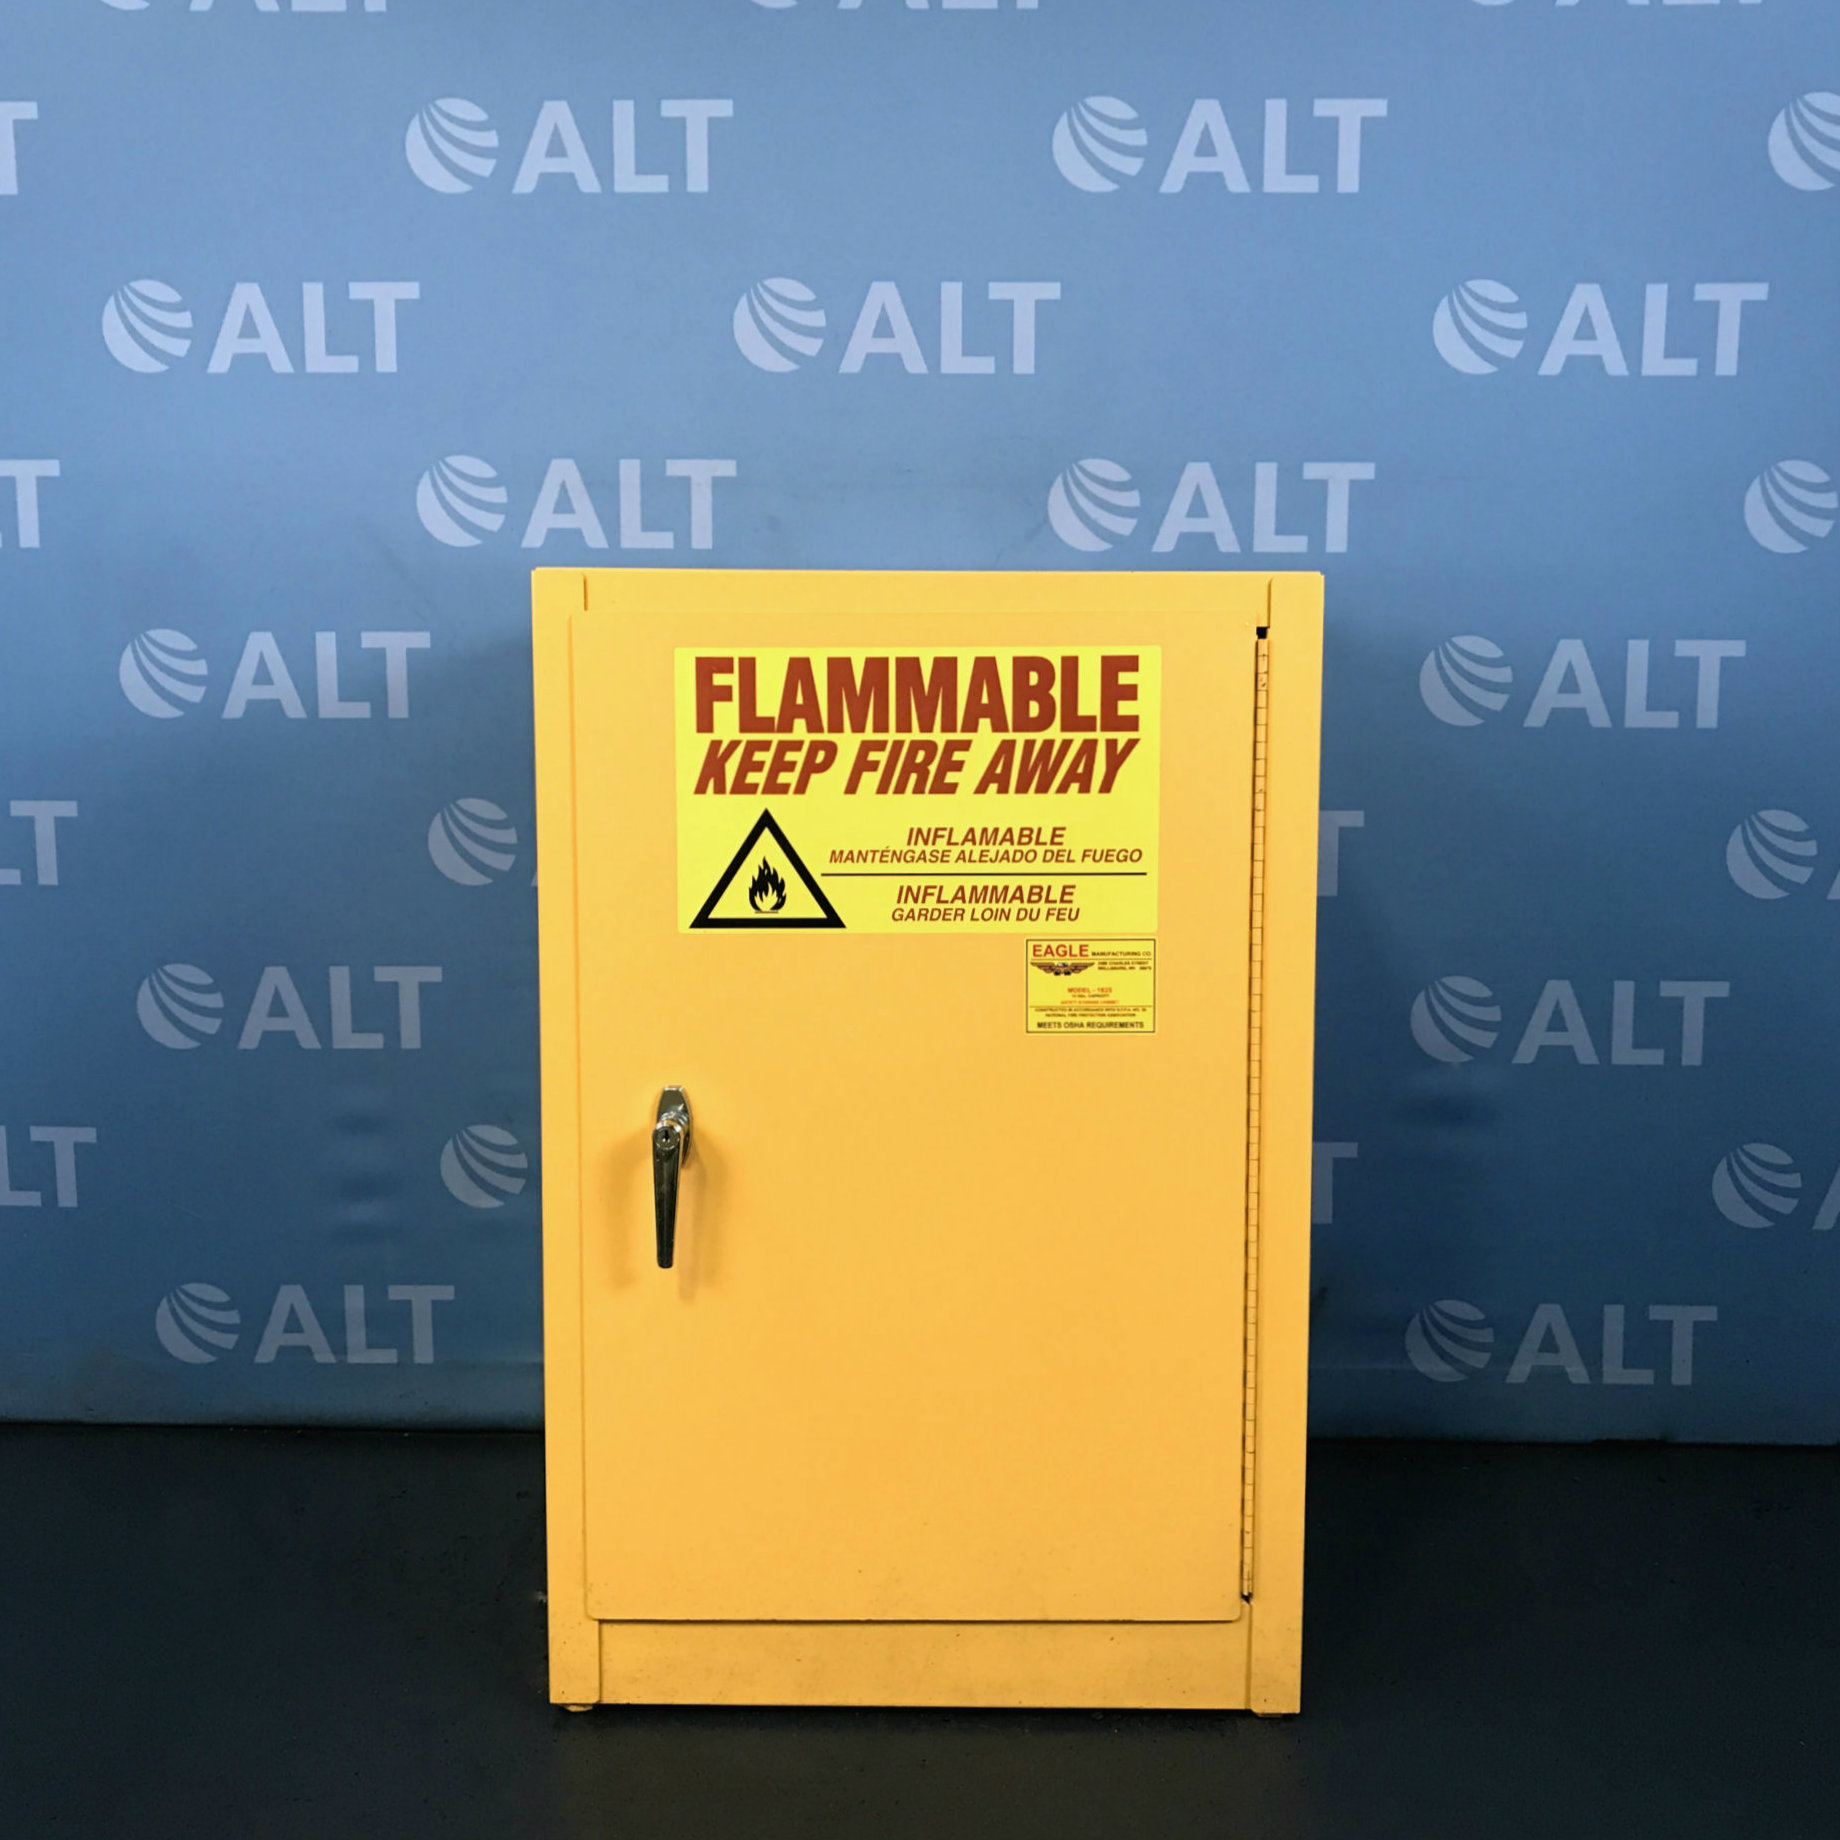 Eagle Manufacturing Model 1925 12 Gallon Flammable Safety Storage Cabinet Image